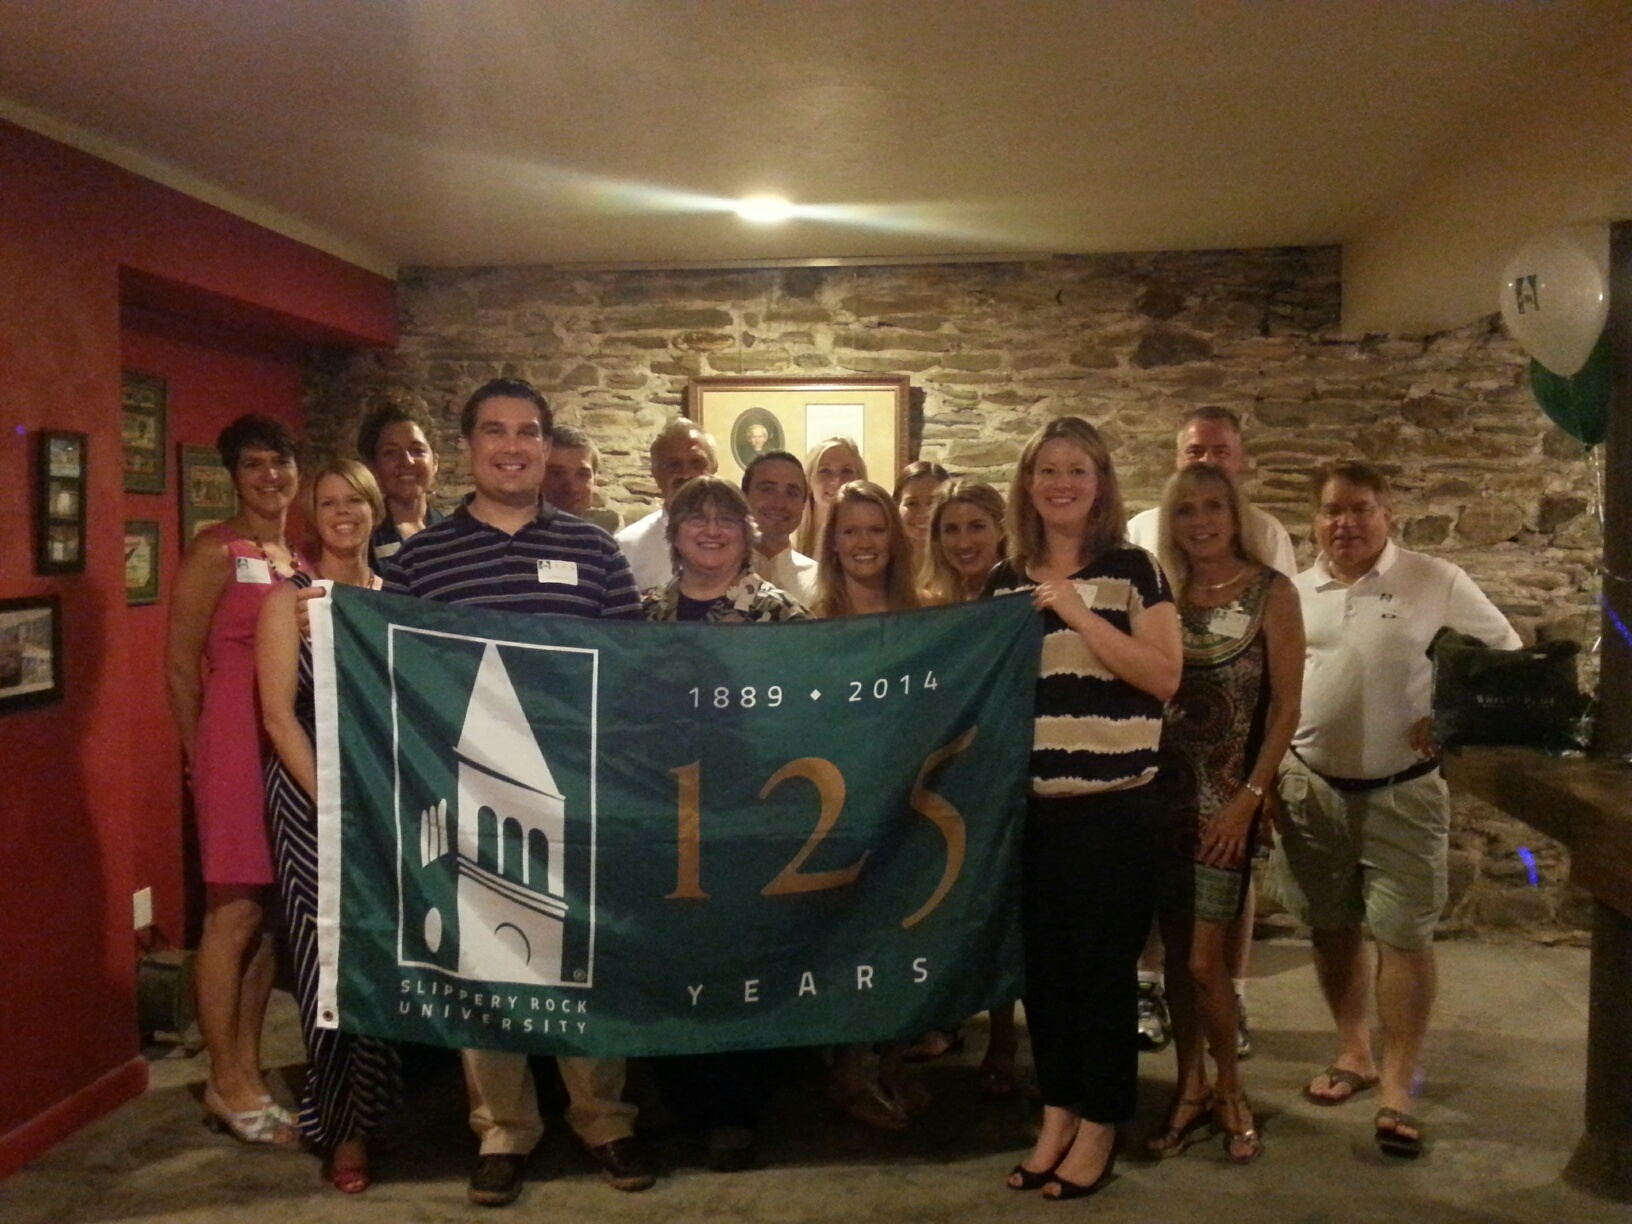 SRU Alumni Holding banner at Erie Event